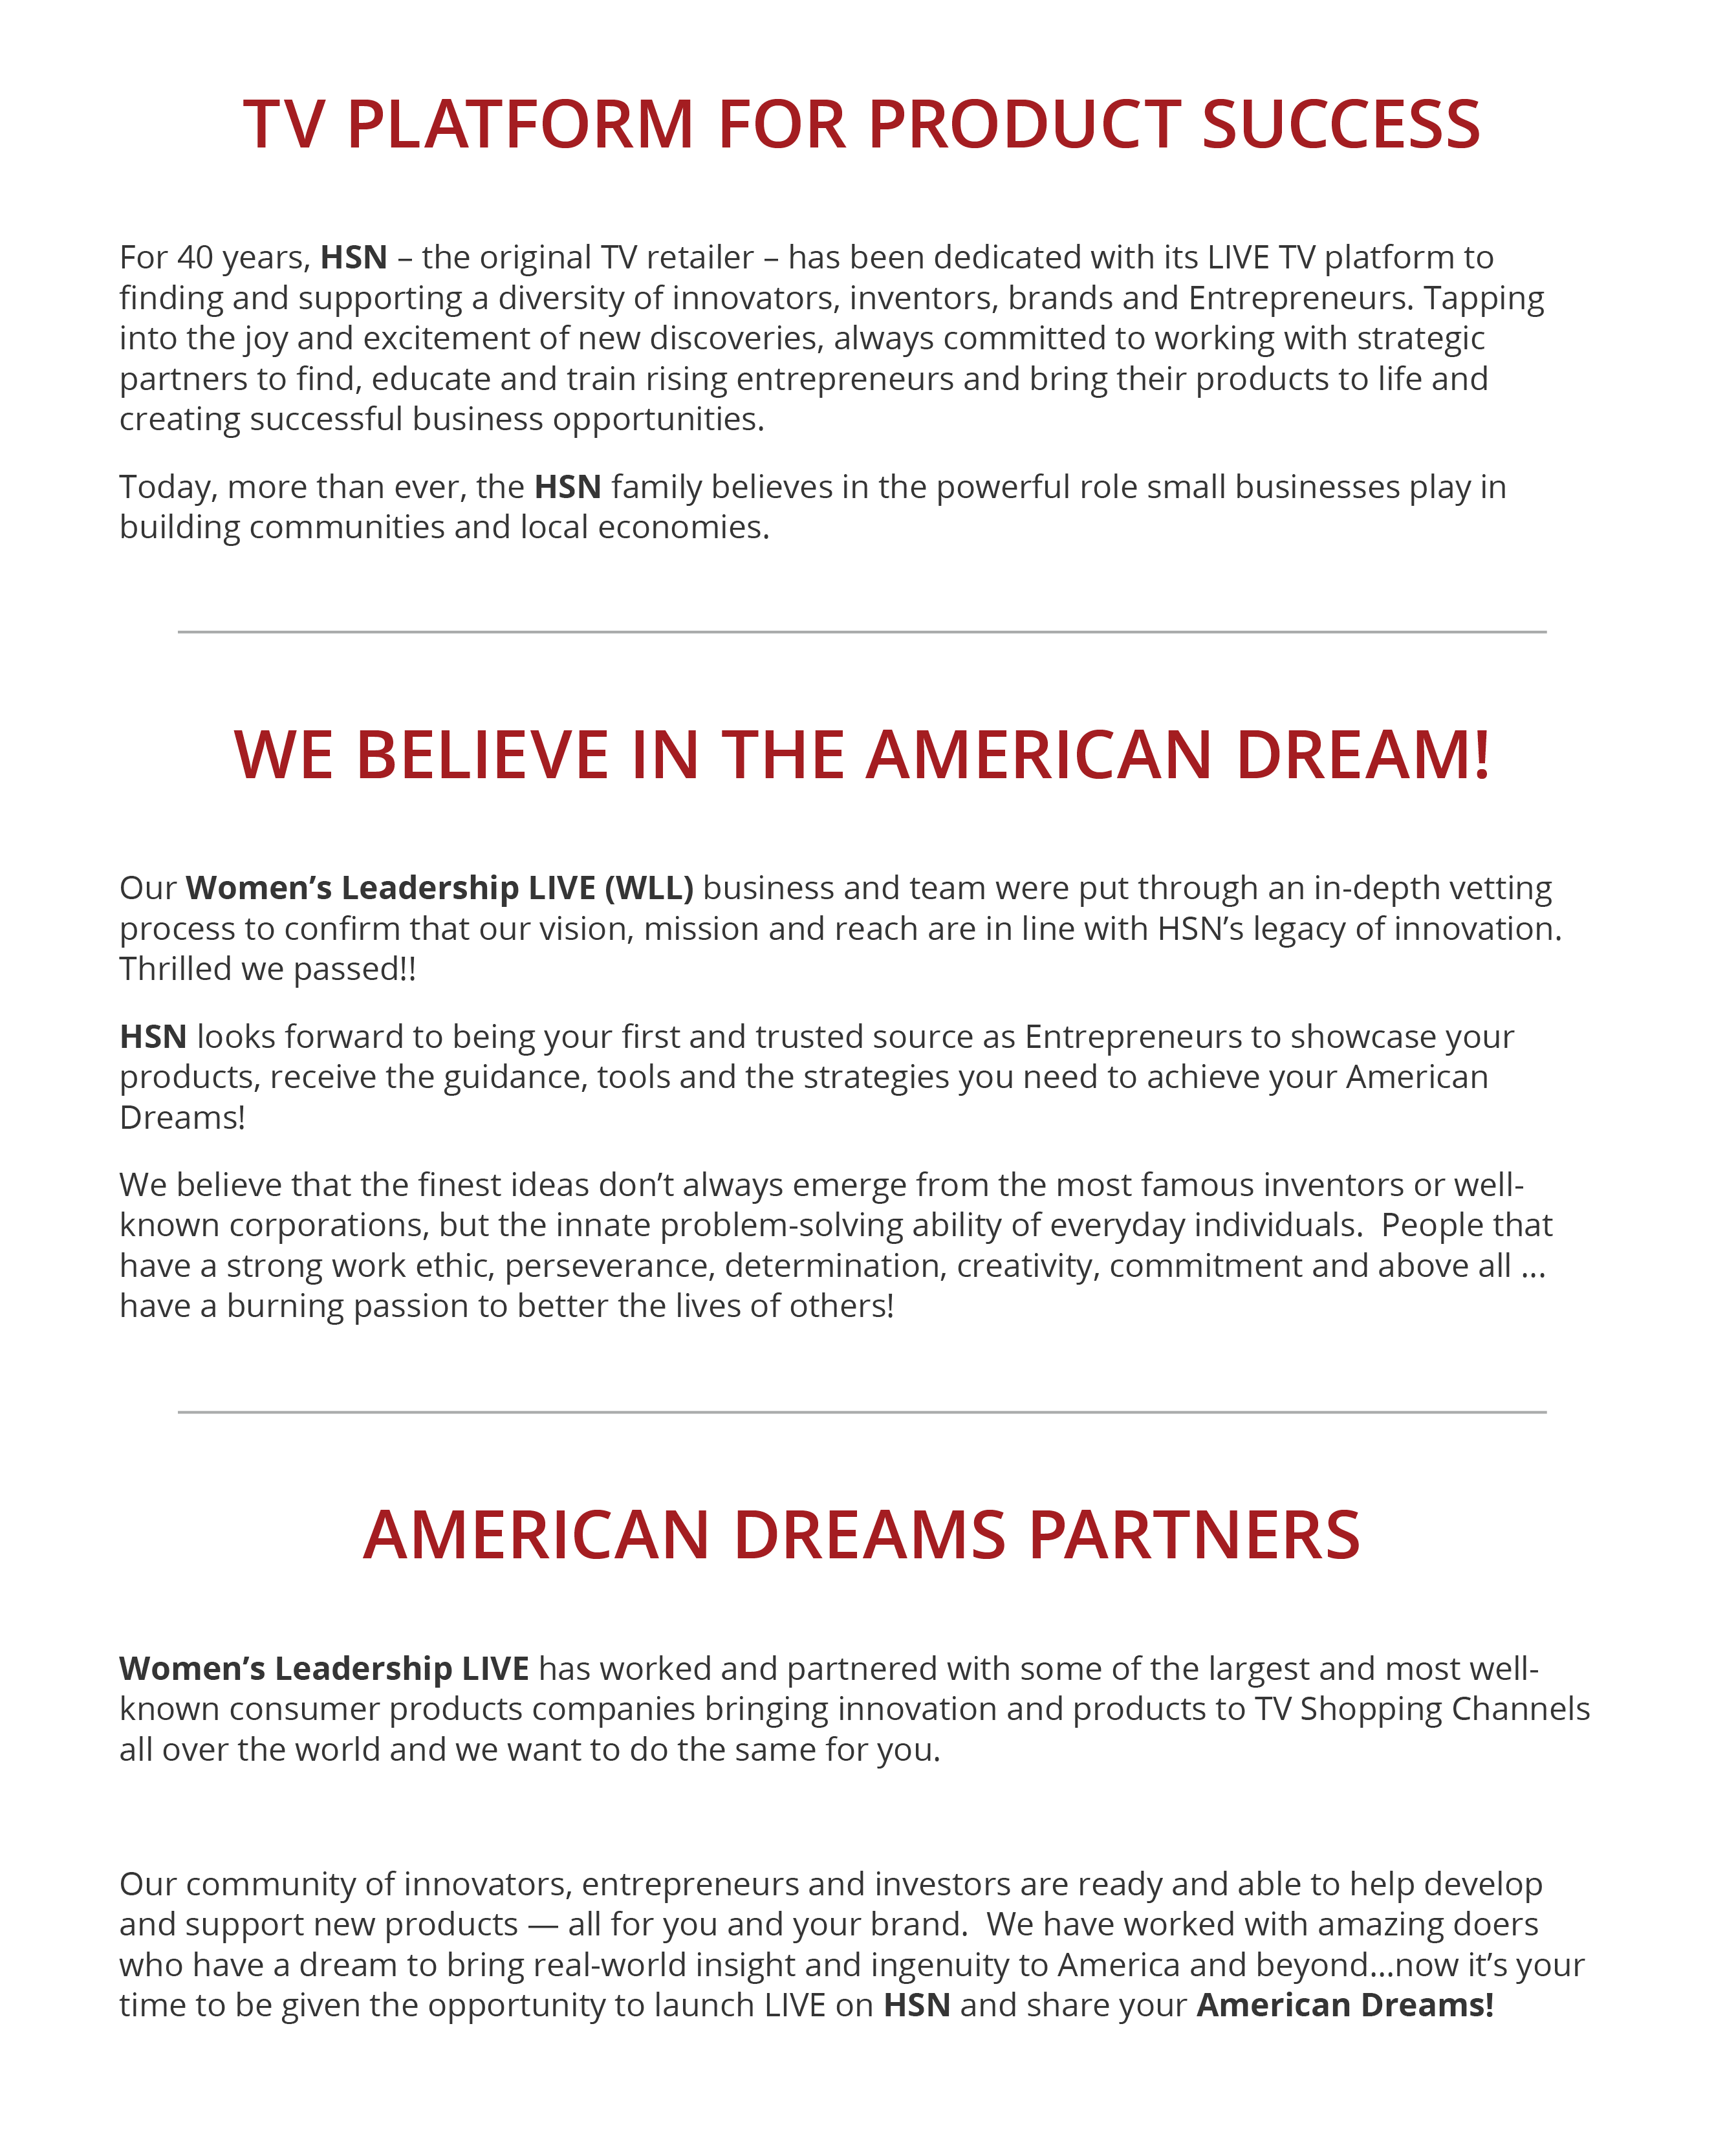 American Dreams Web Graphic Text Part 1